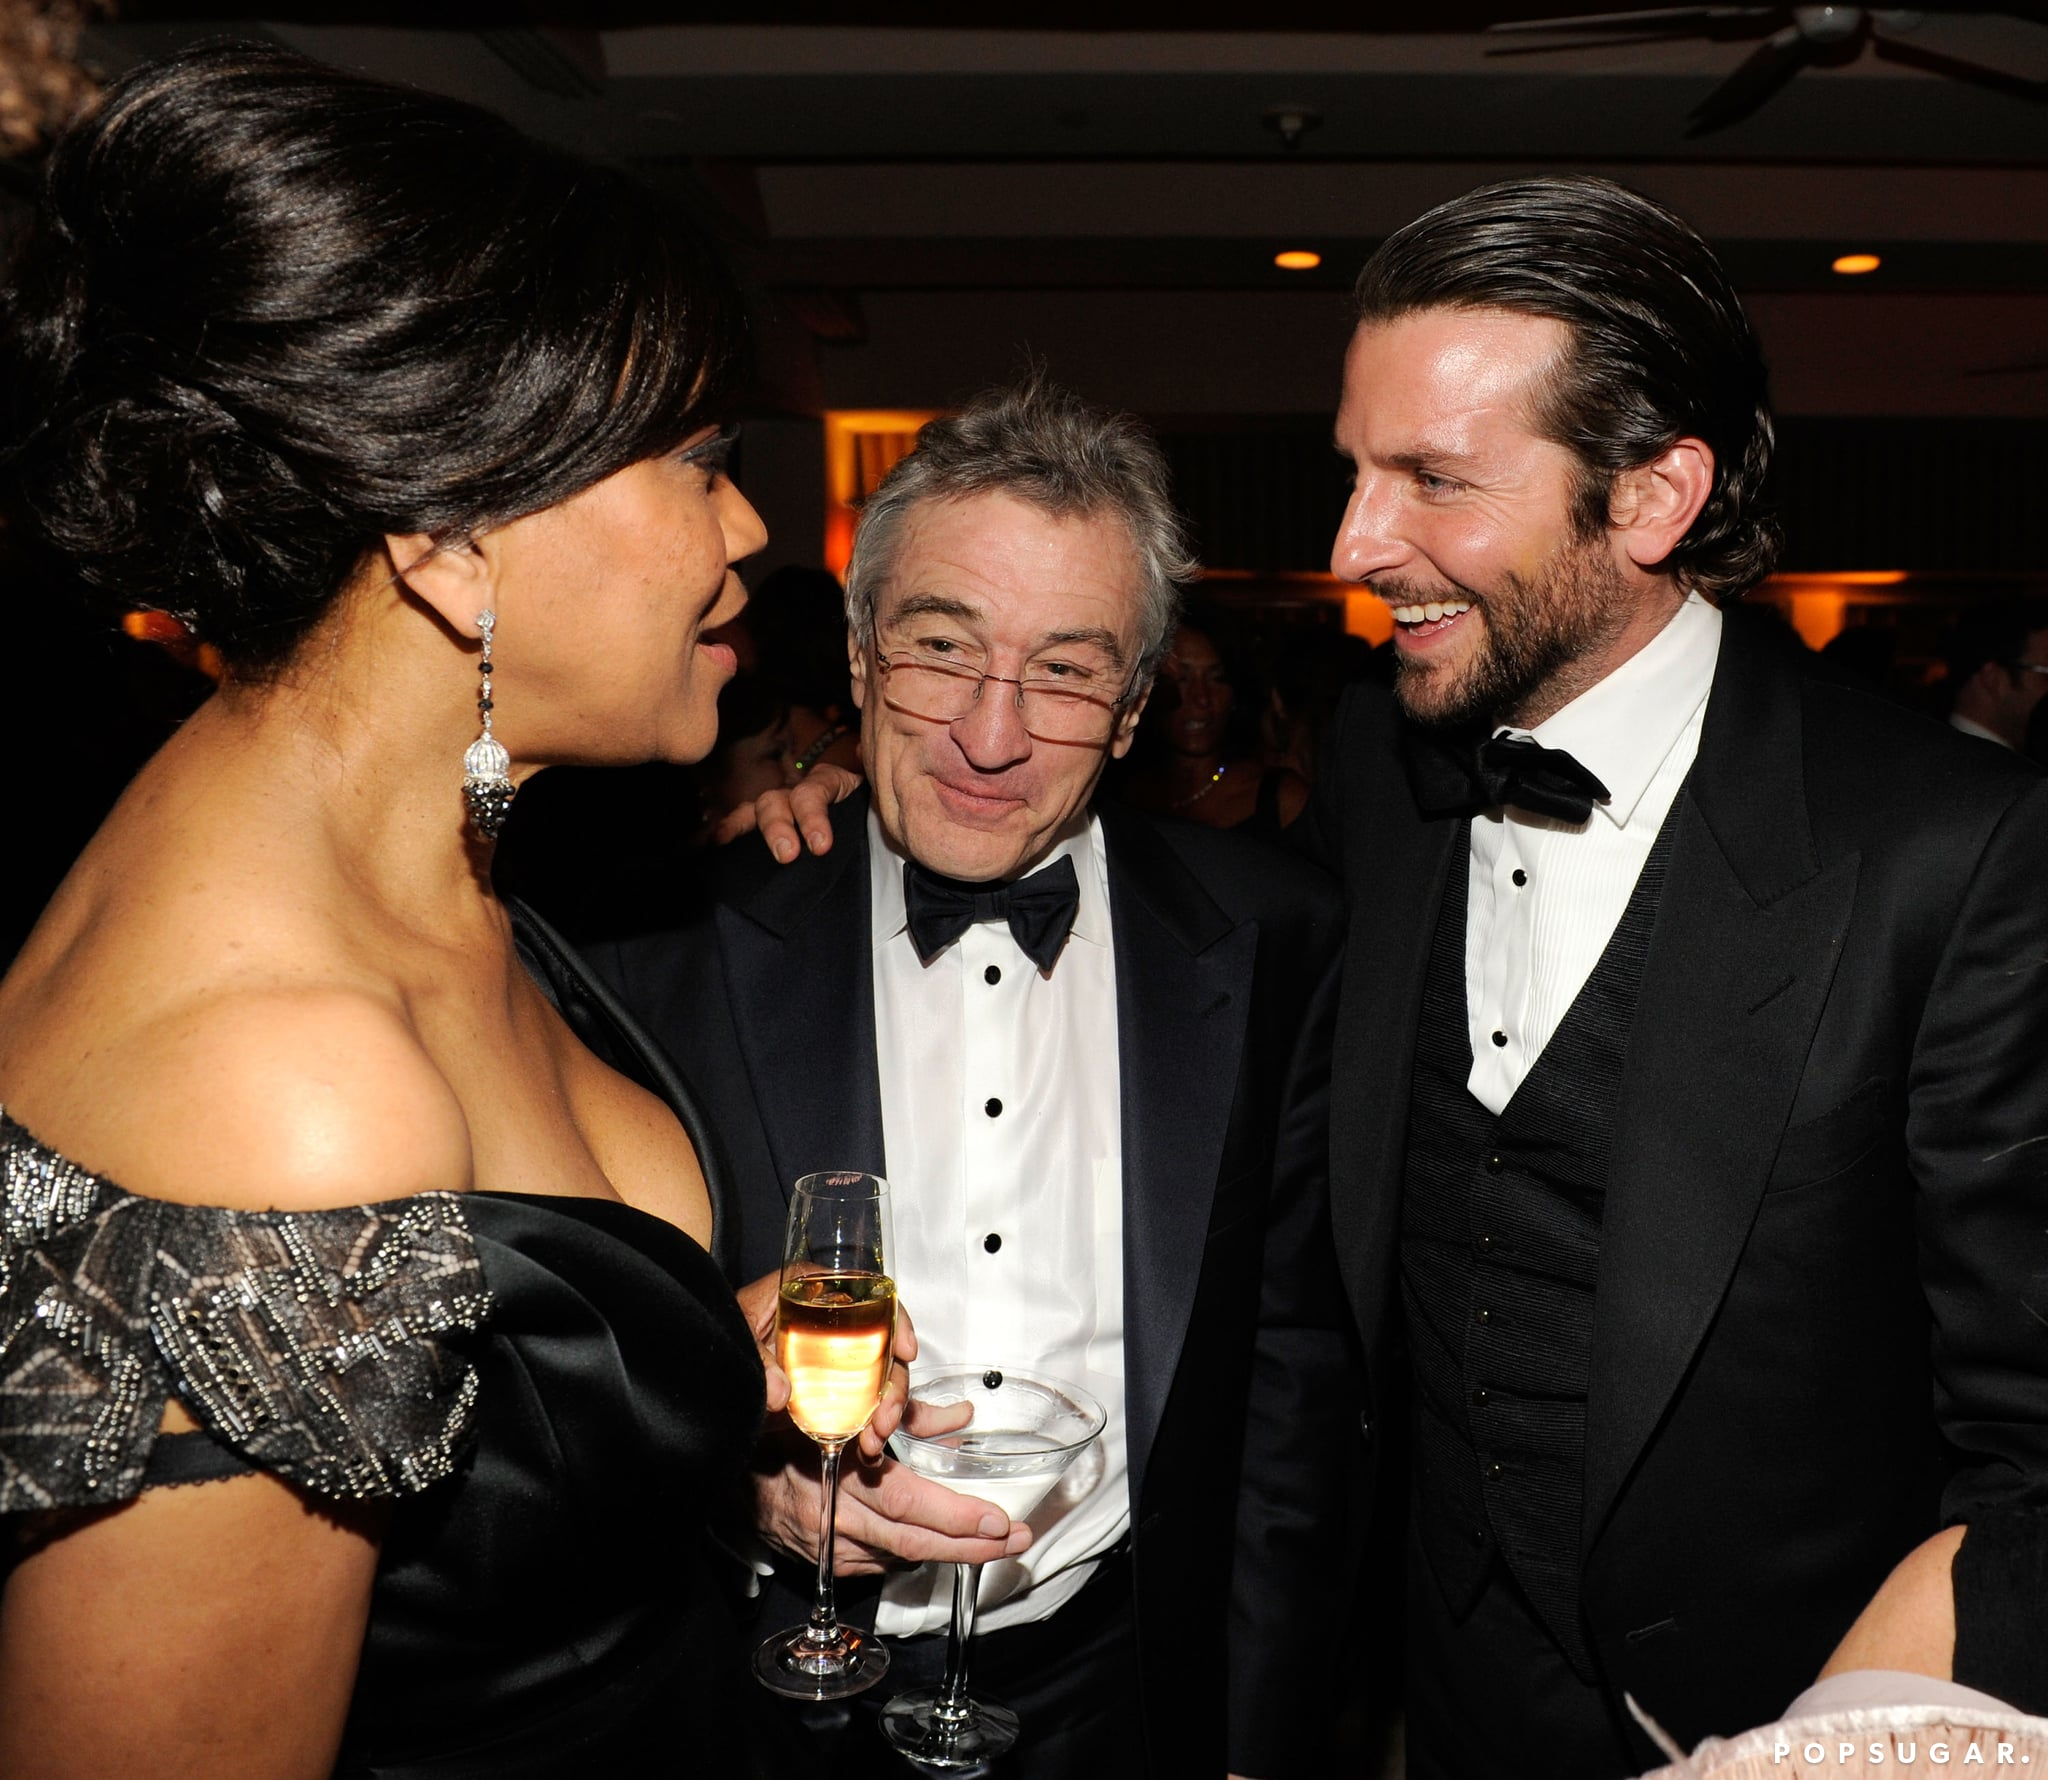 Bradley Cooper and Robert De Niro stuck together while they talked to Grace Hightower inside the Vanity Fair afterparty on Oscars Sunday.